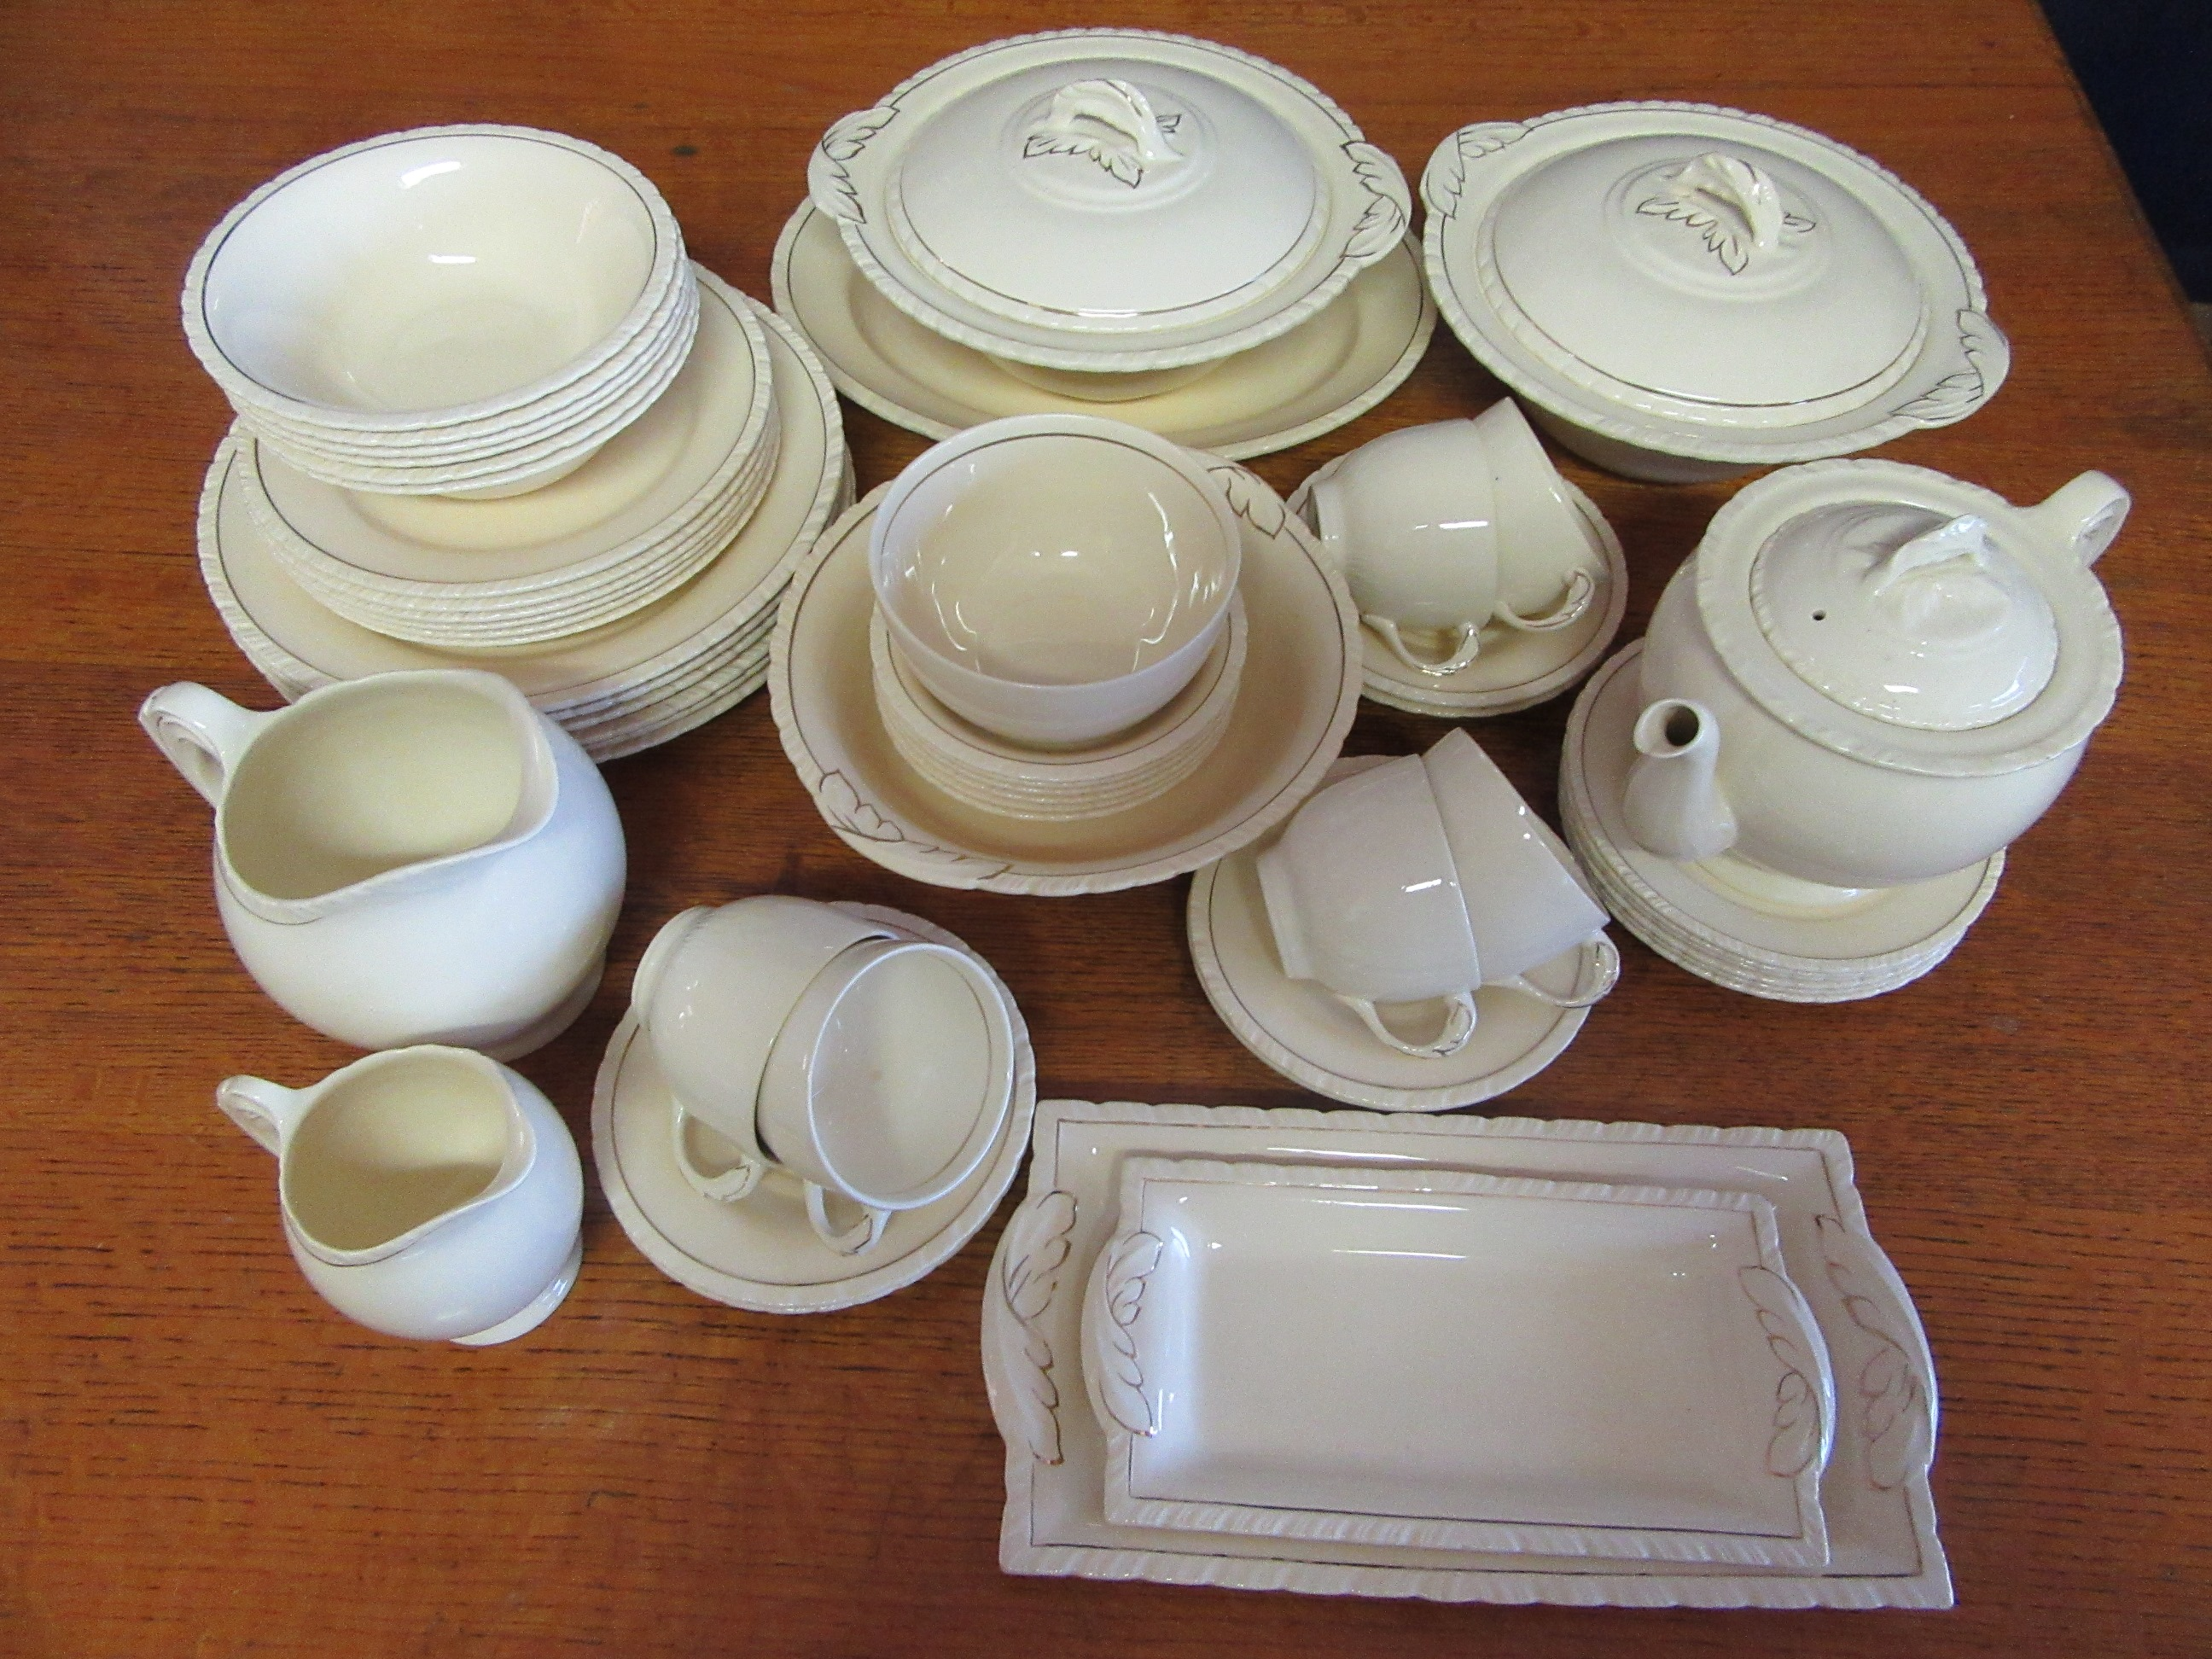 New Hall Dinner Set For 6 Extras 55 Pieces Diana 1930s